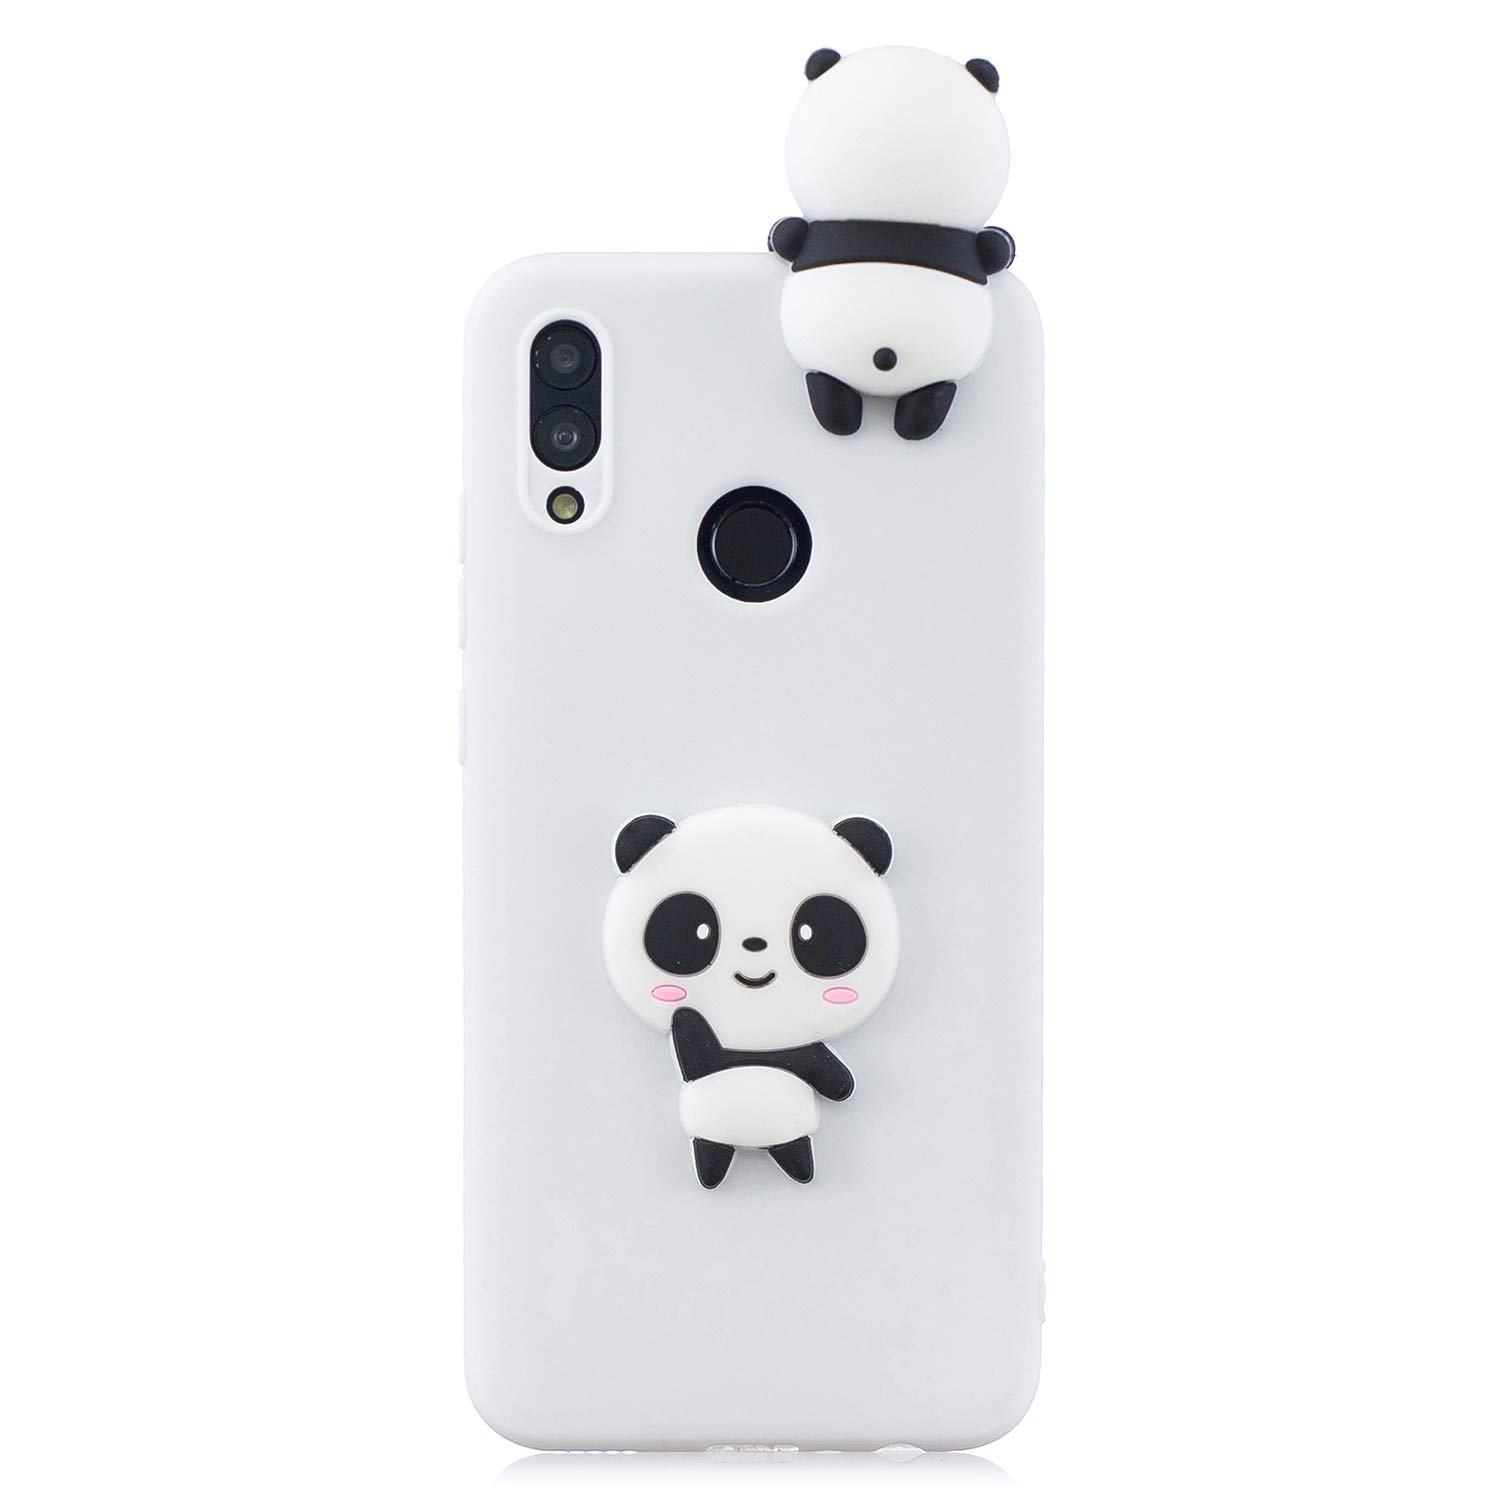 TPU Case for Huawei P Smart 2019/Huawei Honor 10 Lite,Moiky Funny 3D White Panda Design Ultra Thin Soft Silicone Resistant Back Cover Phone Case Unique Style Protect Case by MOIKY (Image #3)